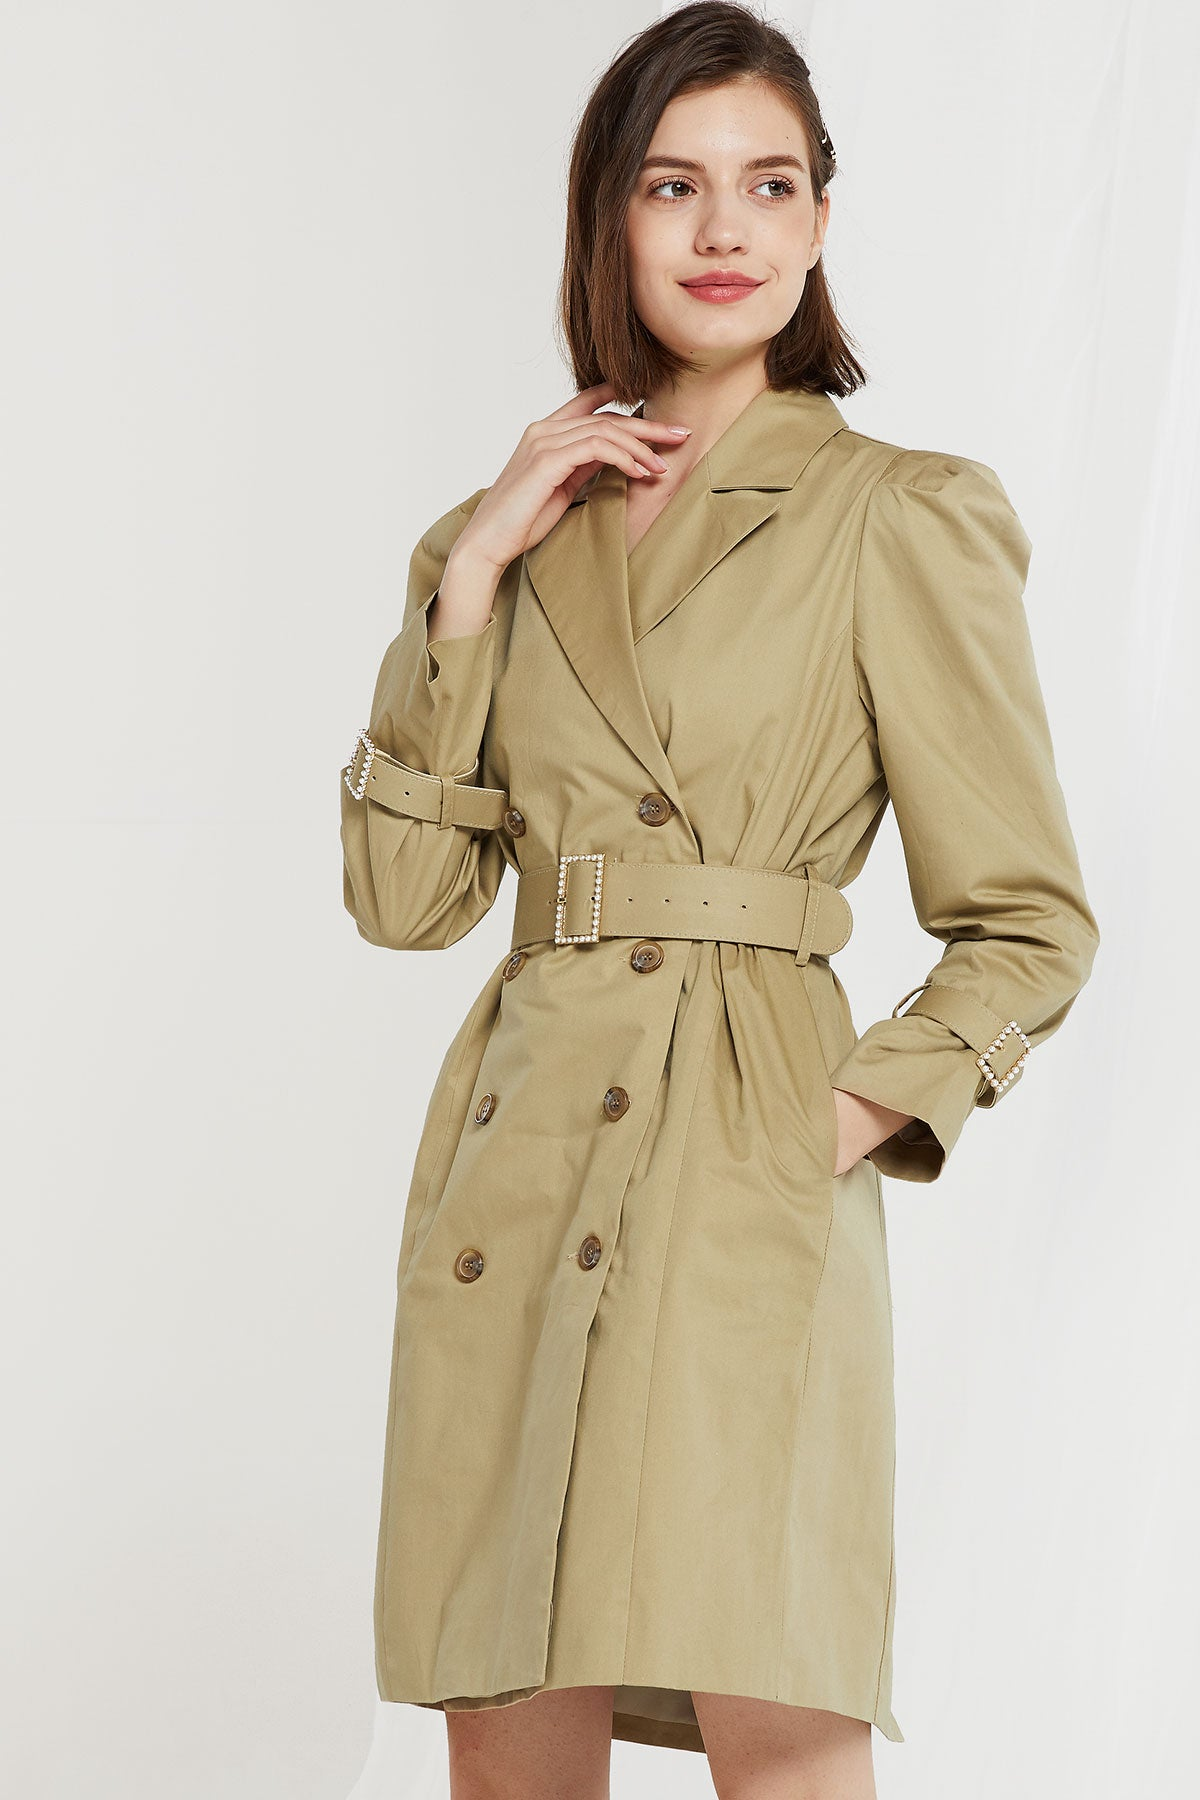 Serenity Puff Sleeve Trench Dress